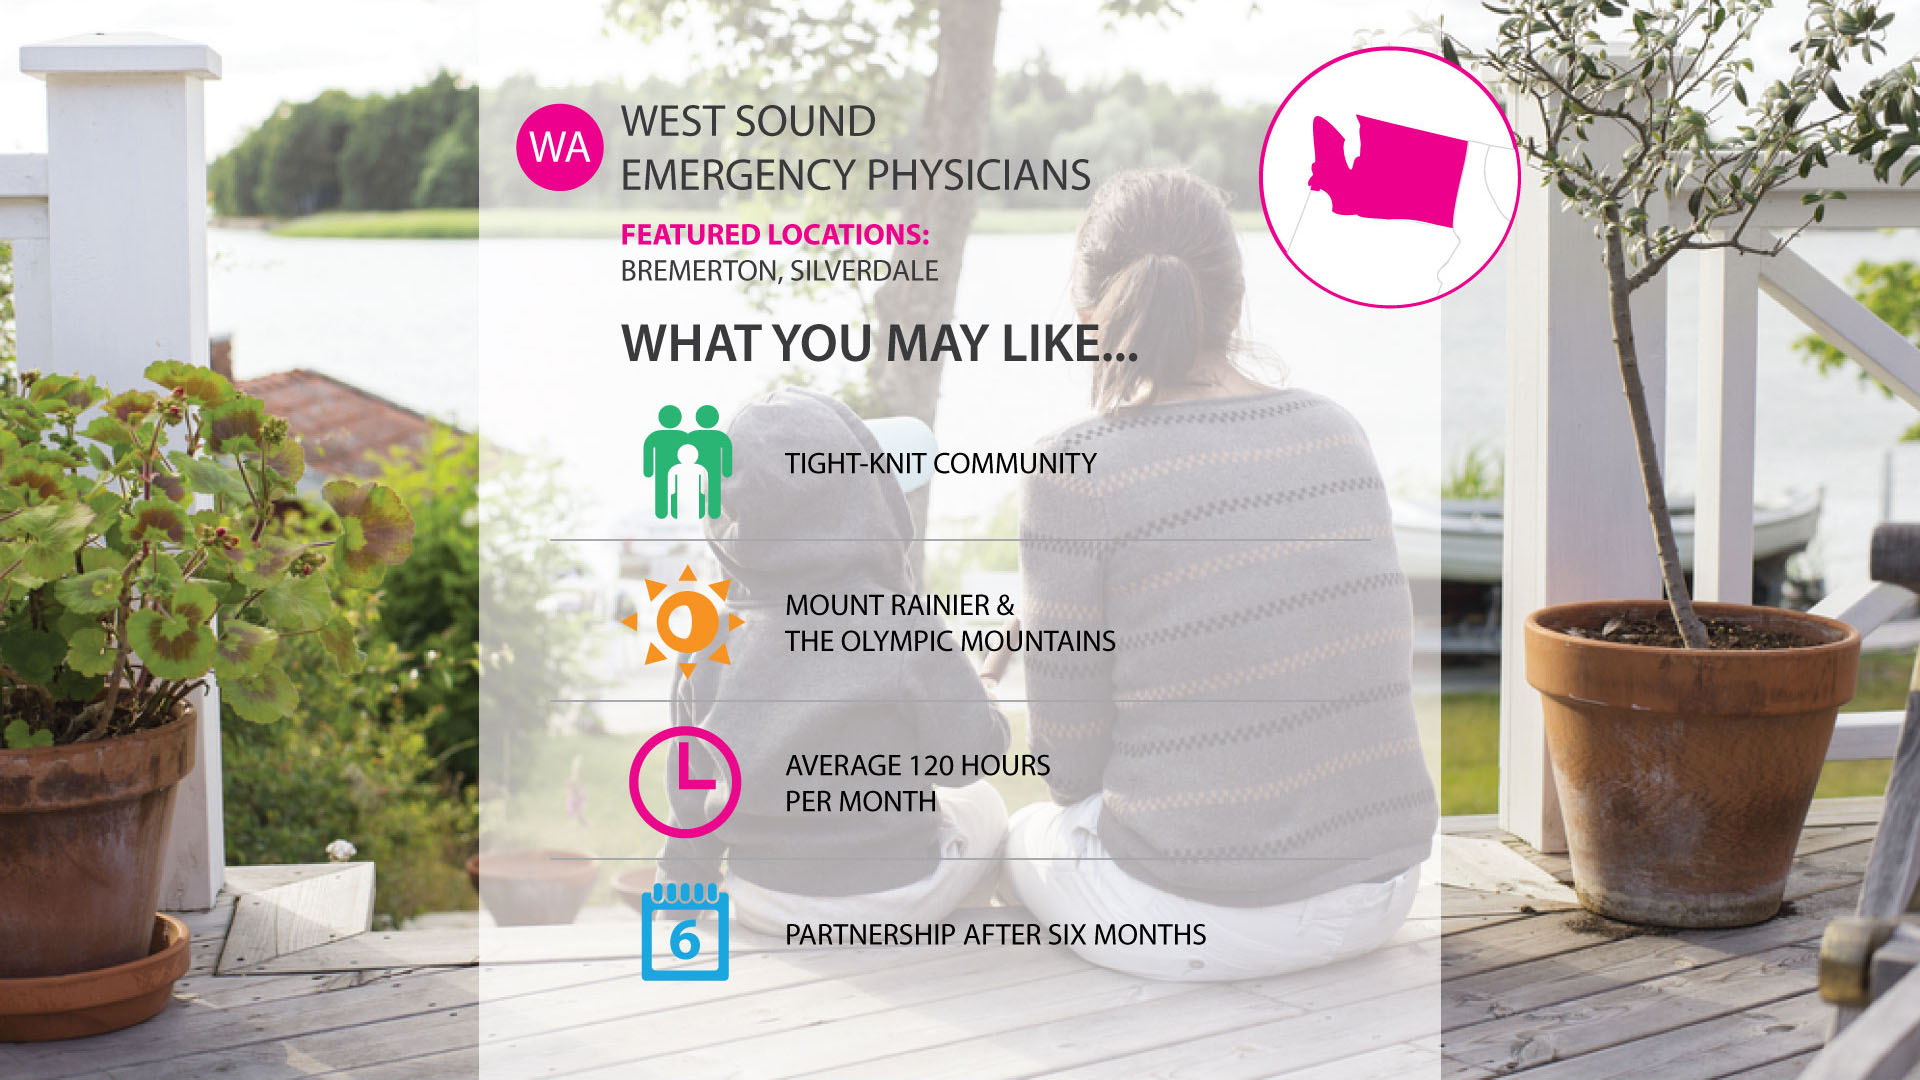 West Sound Emergency Physicians job in seattle washington area